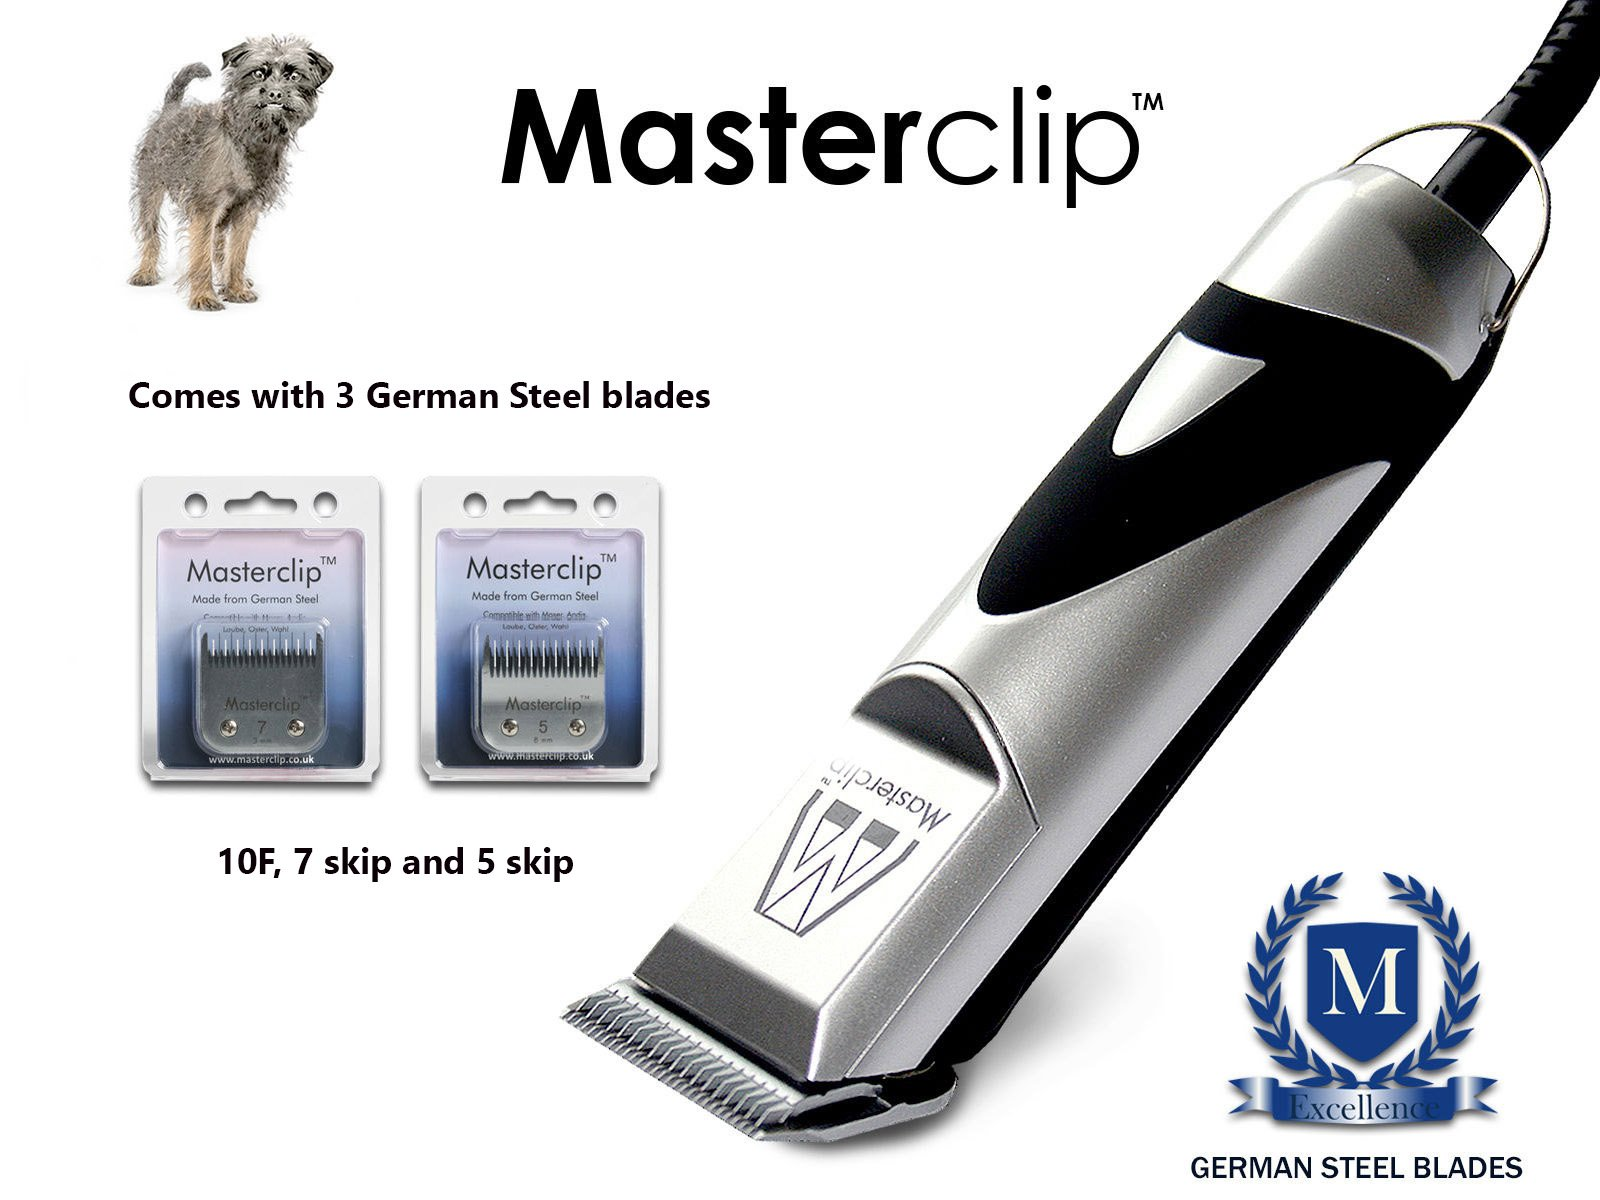 Masterclip Professional Affenpinscher Dog Clippers Set Pet Grooming Clipper Trimmer Supplies